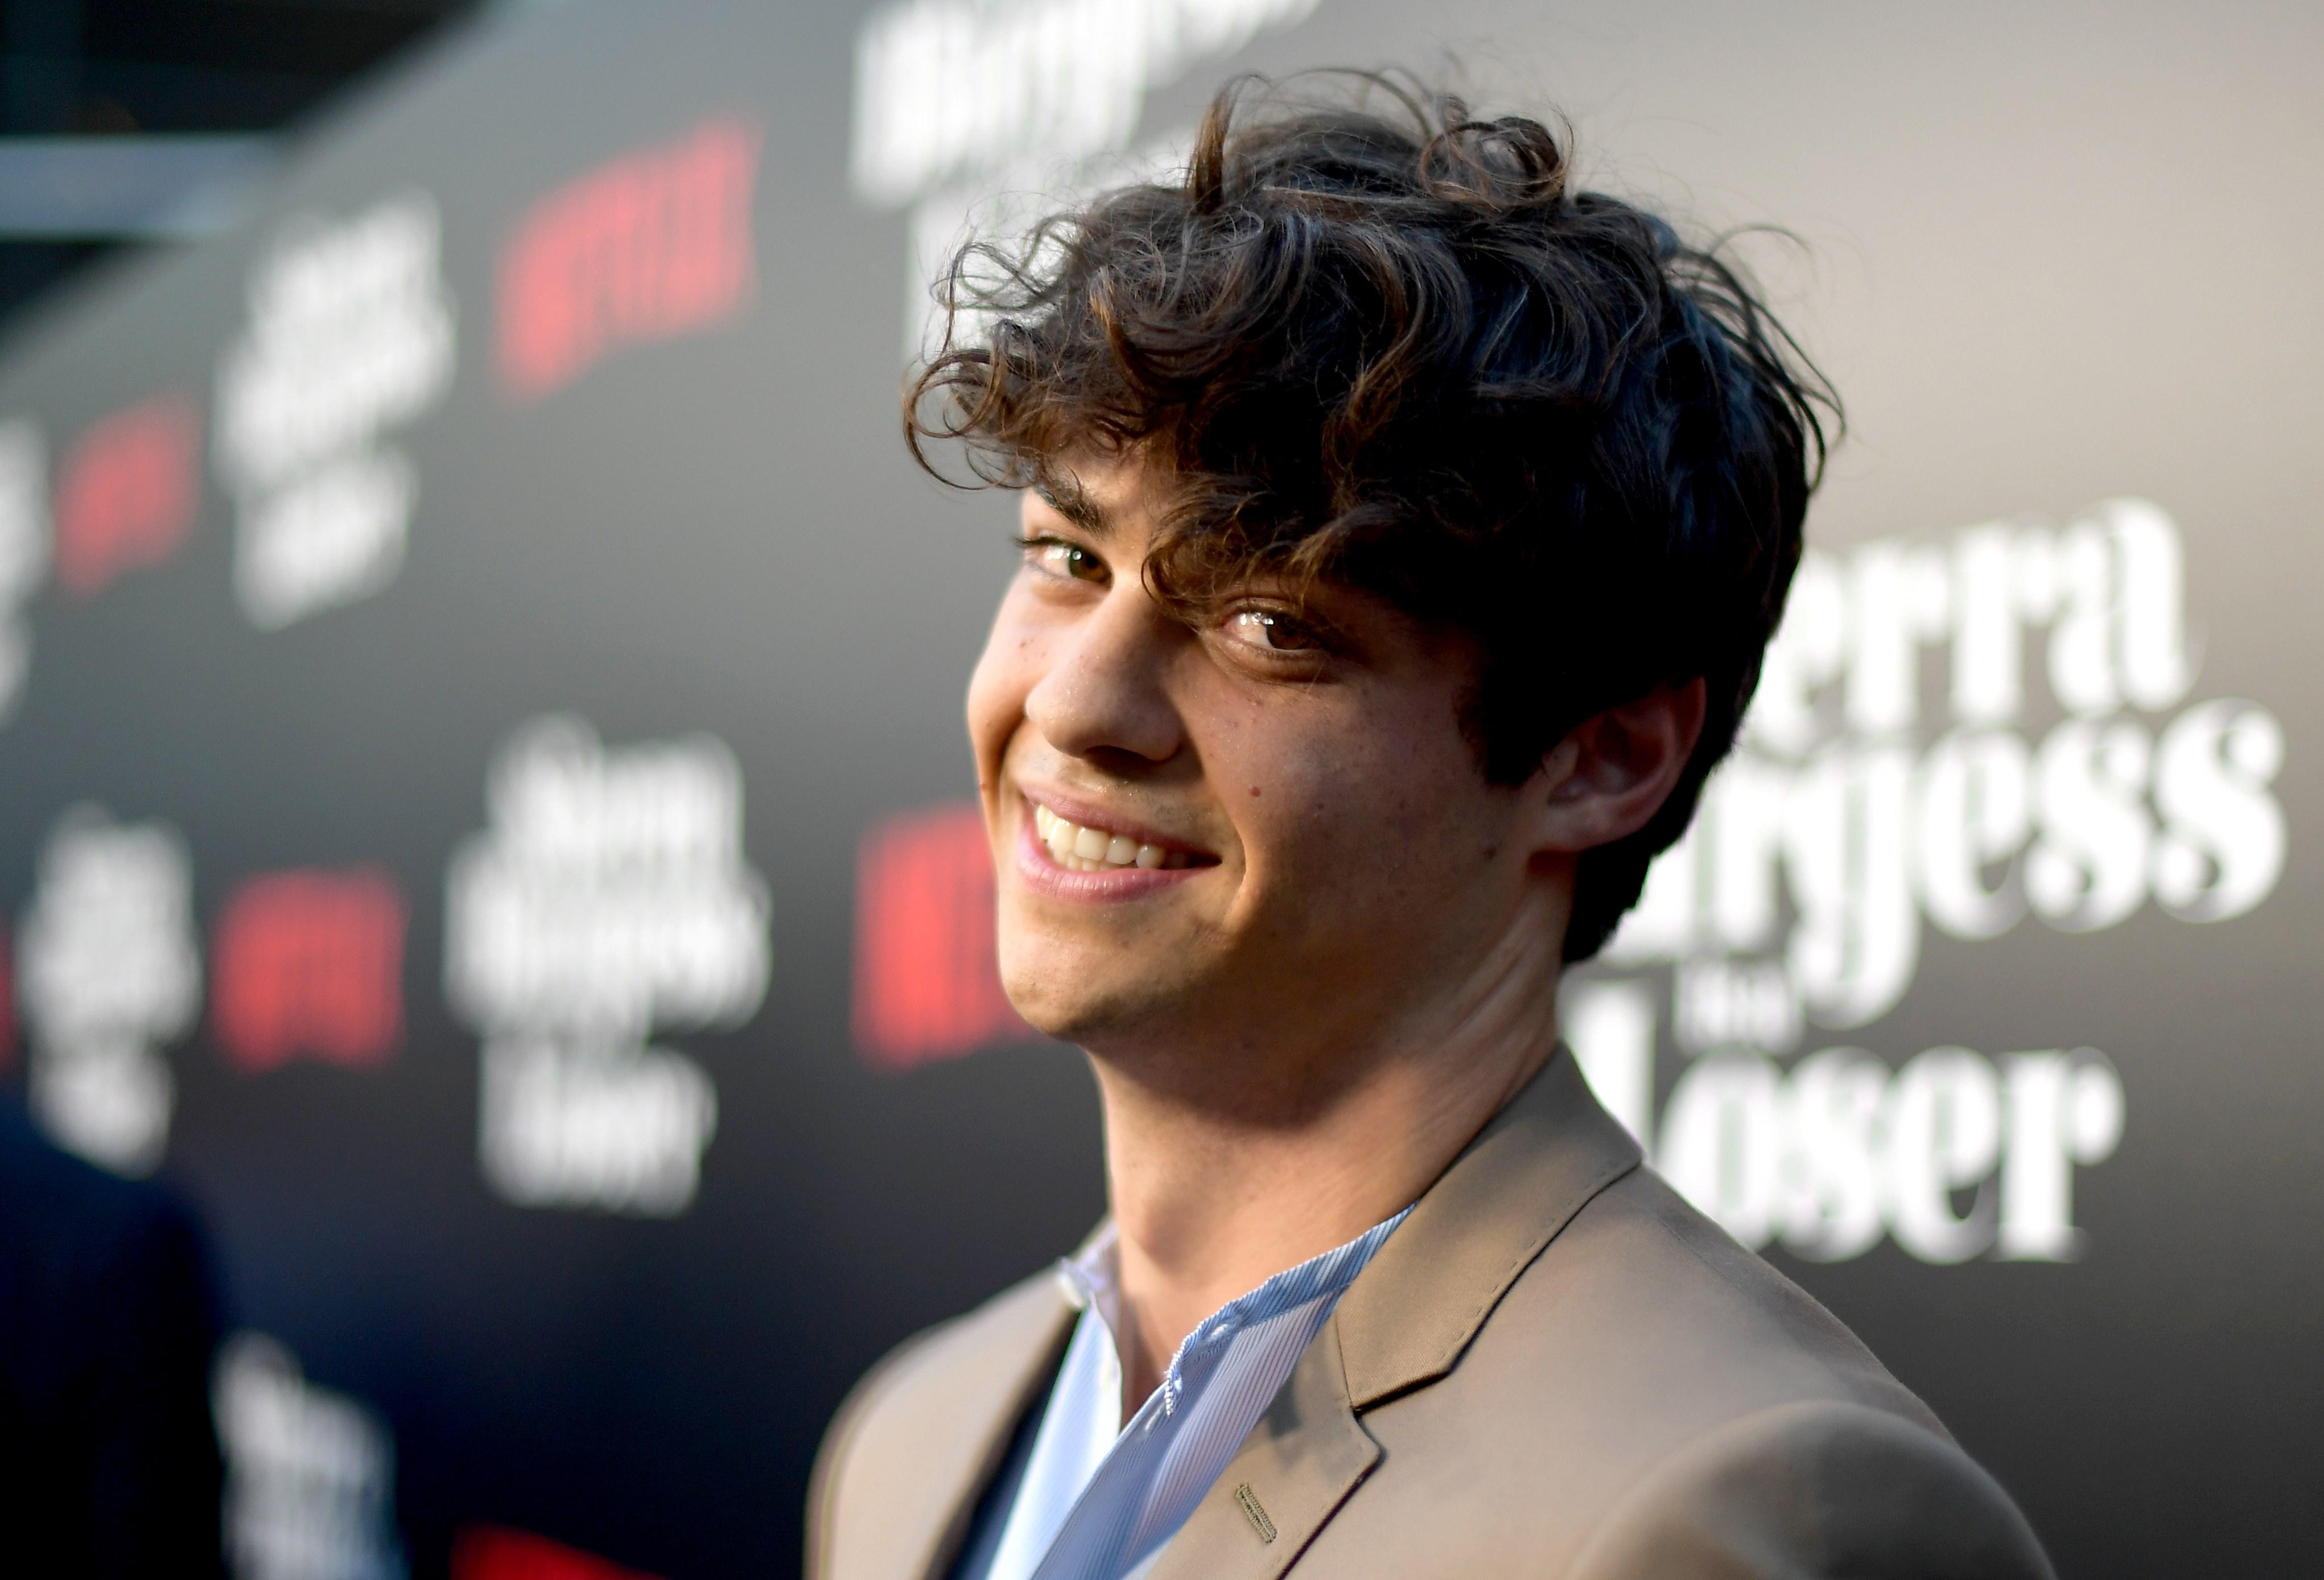 162m Followers 85 Following 186 Posts See Instagram photos and videos from Noah ncentineo